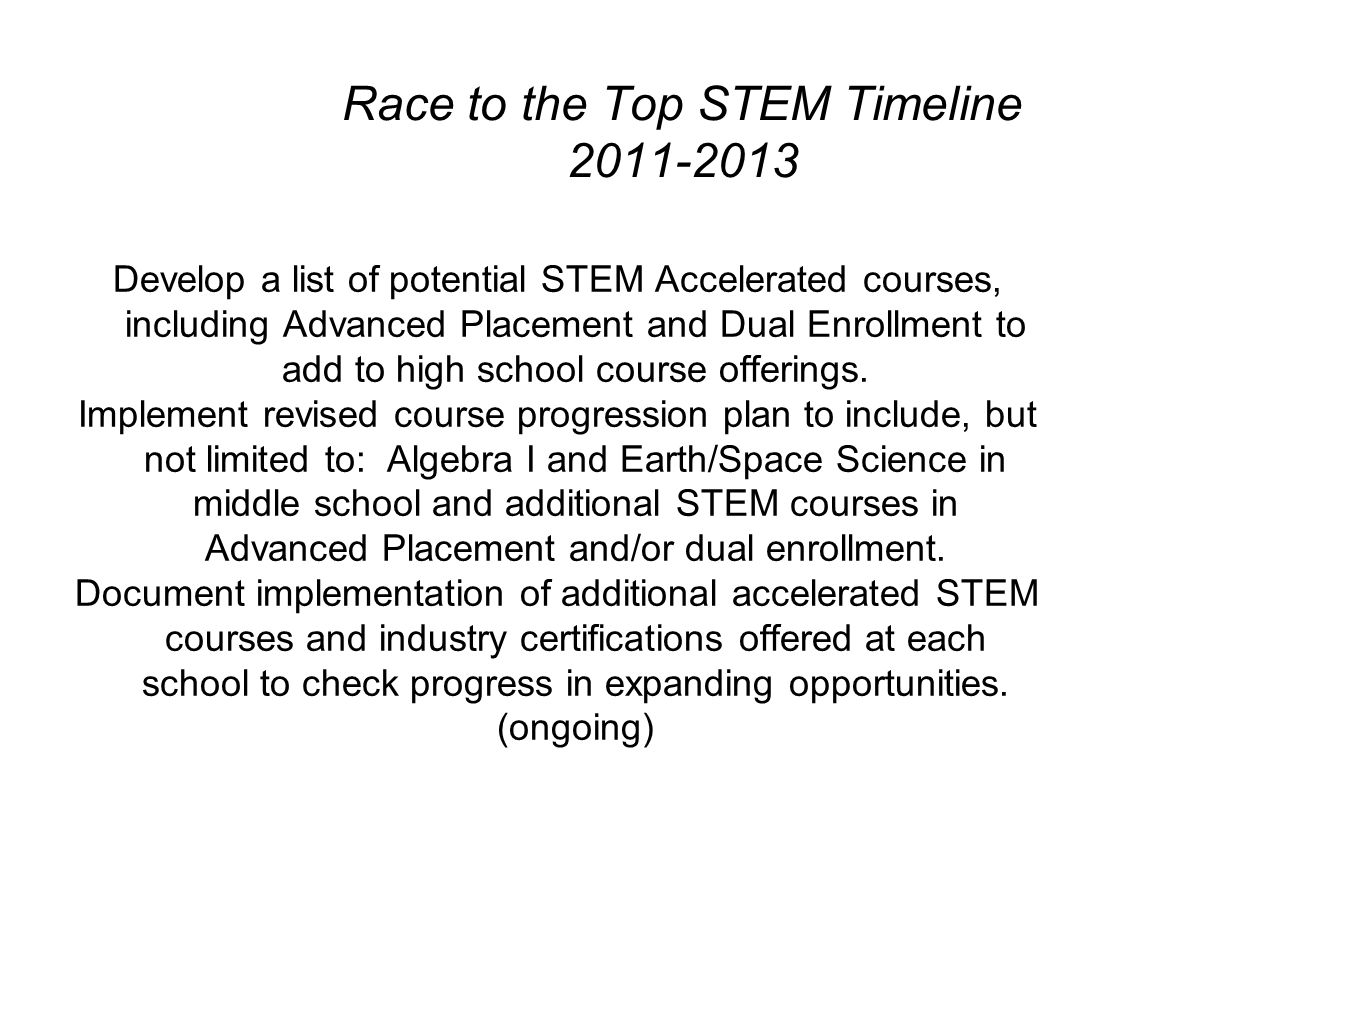 Develop a list of potential STEM Accelerated courses, including Advanced Placement and Dual Enrollment to add to high school course offerings.